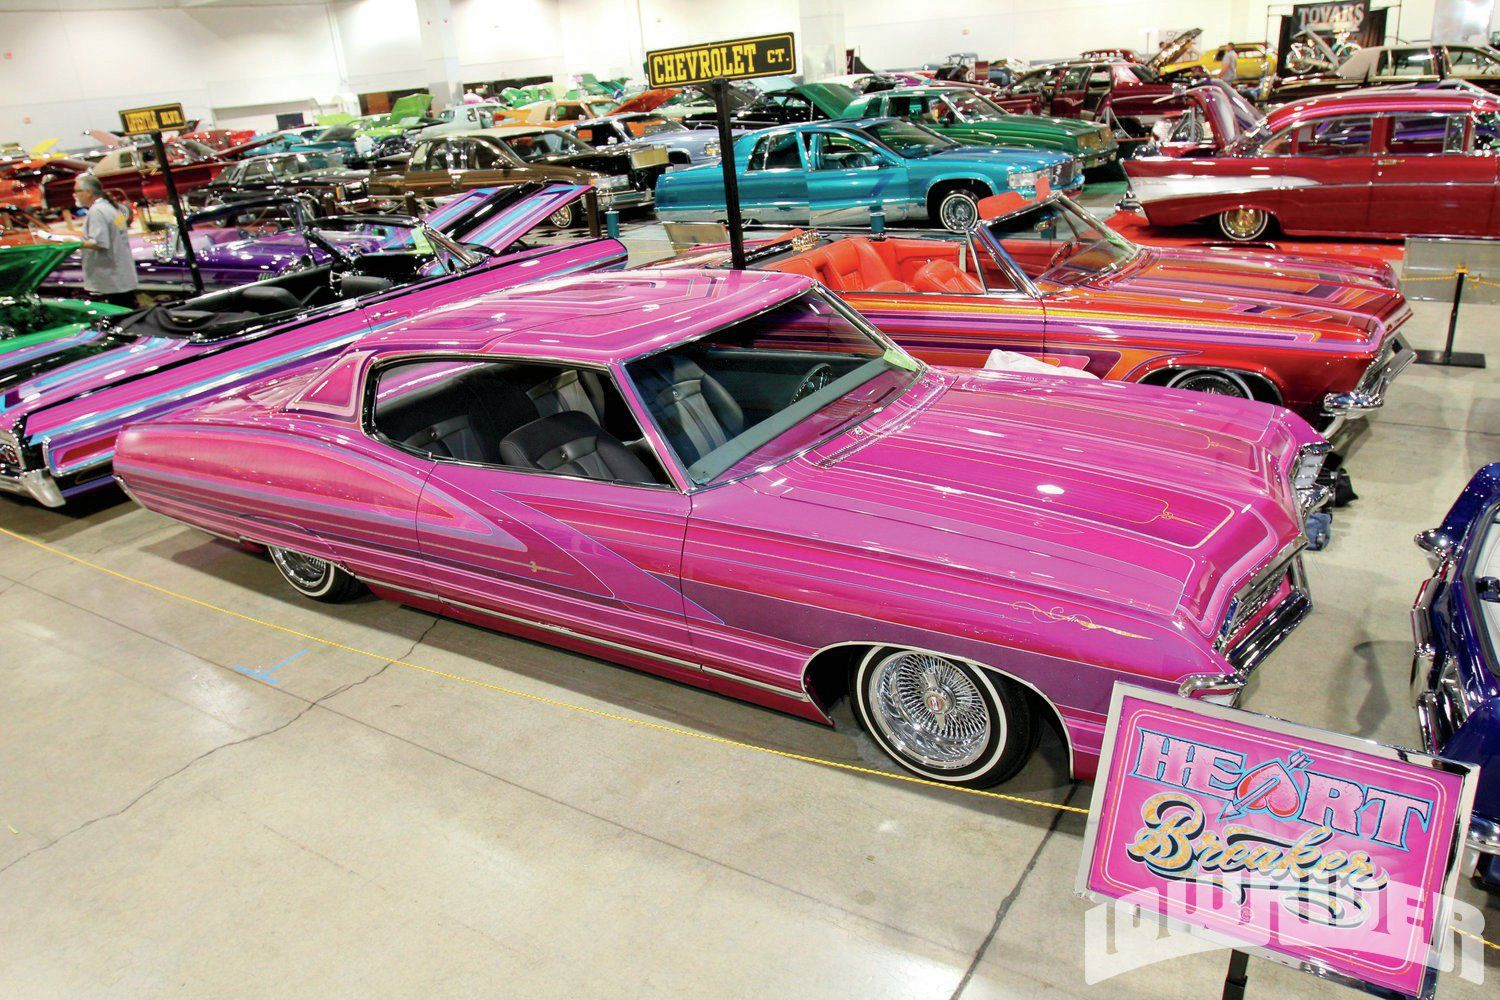 Lifestyle Car Club - Heart Breaker | Lifestyle lowrider ...